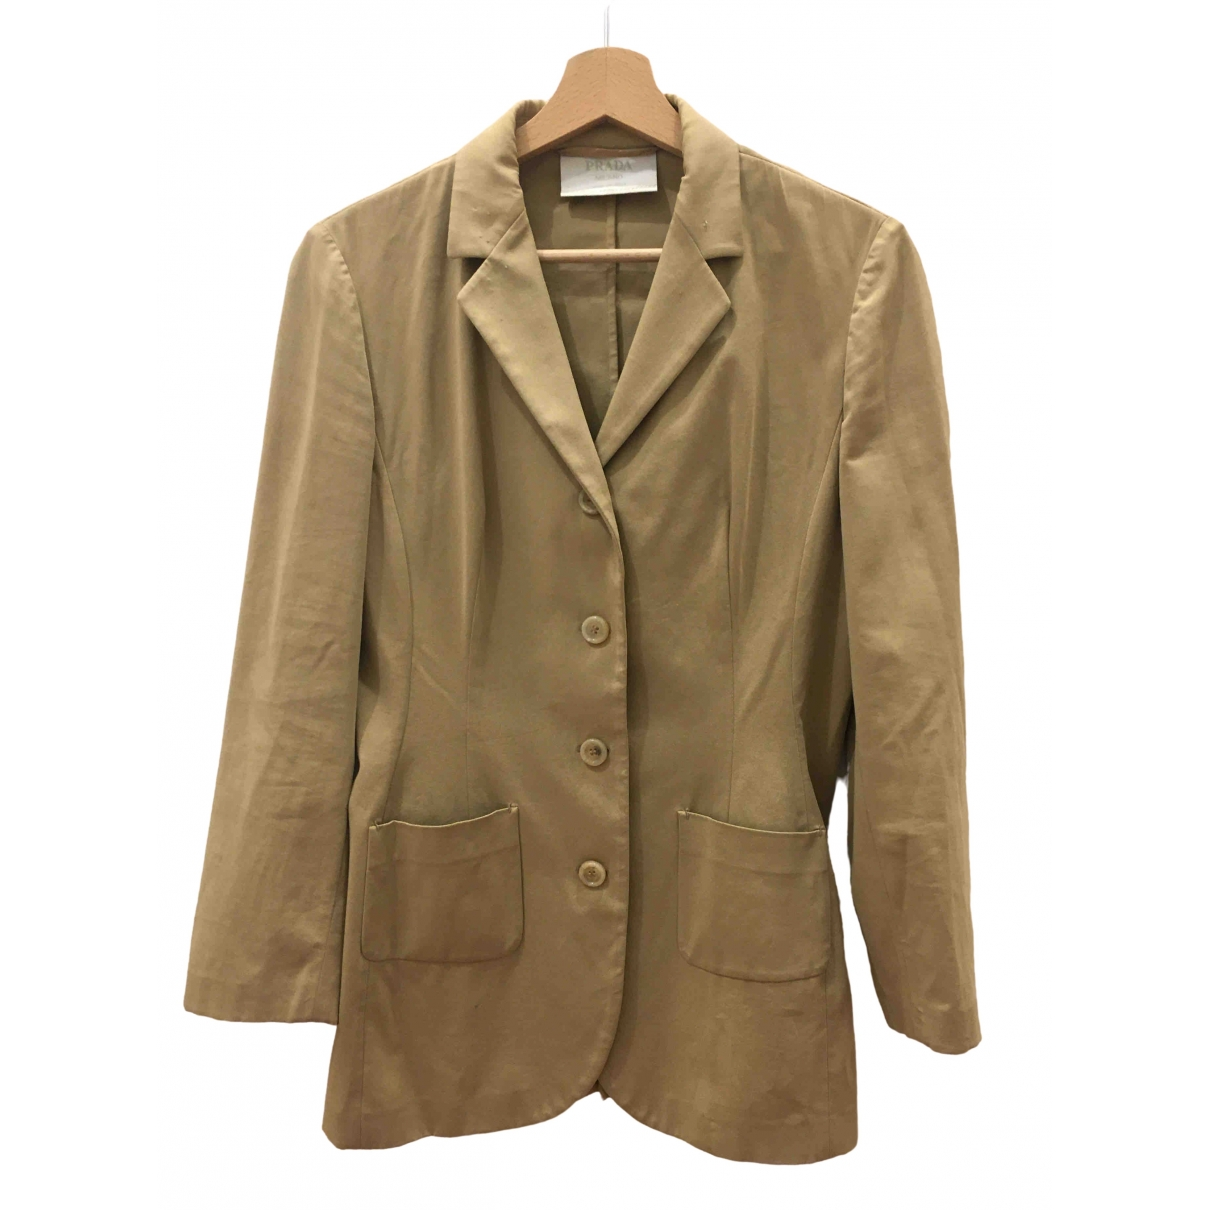 Prada \N Beige Cotton jacket for Women 44 IT